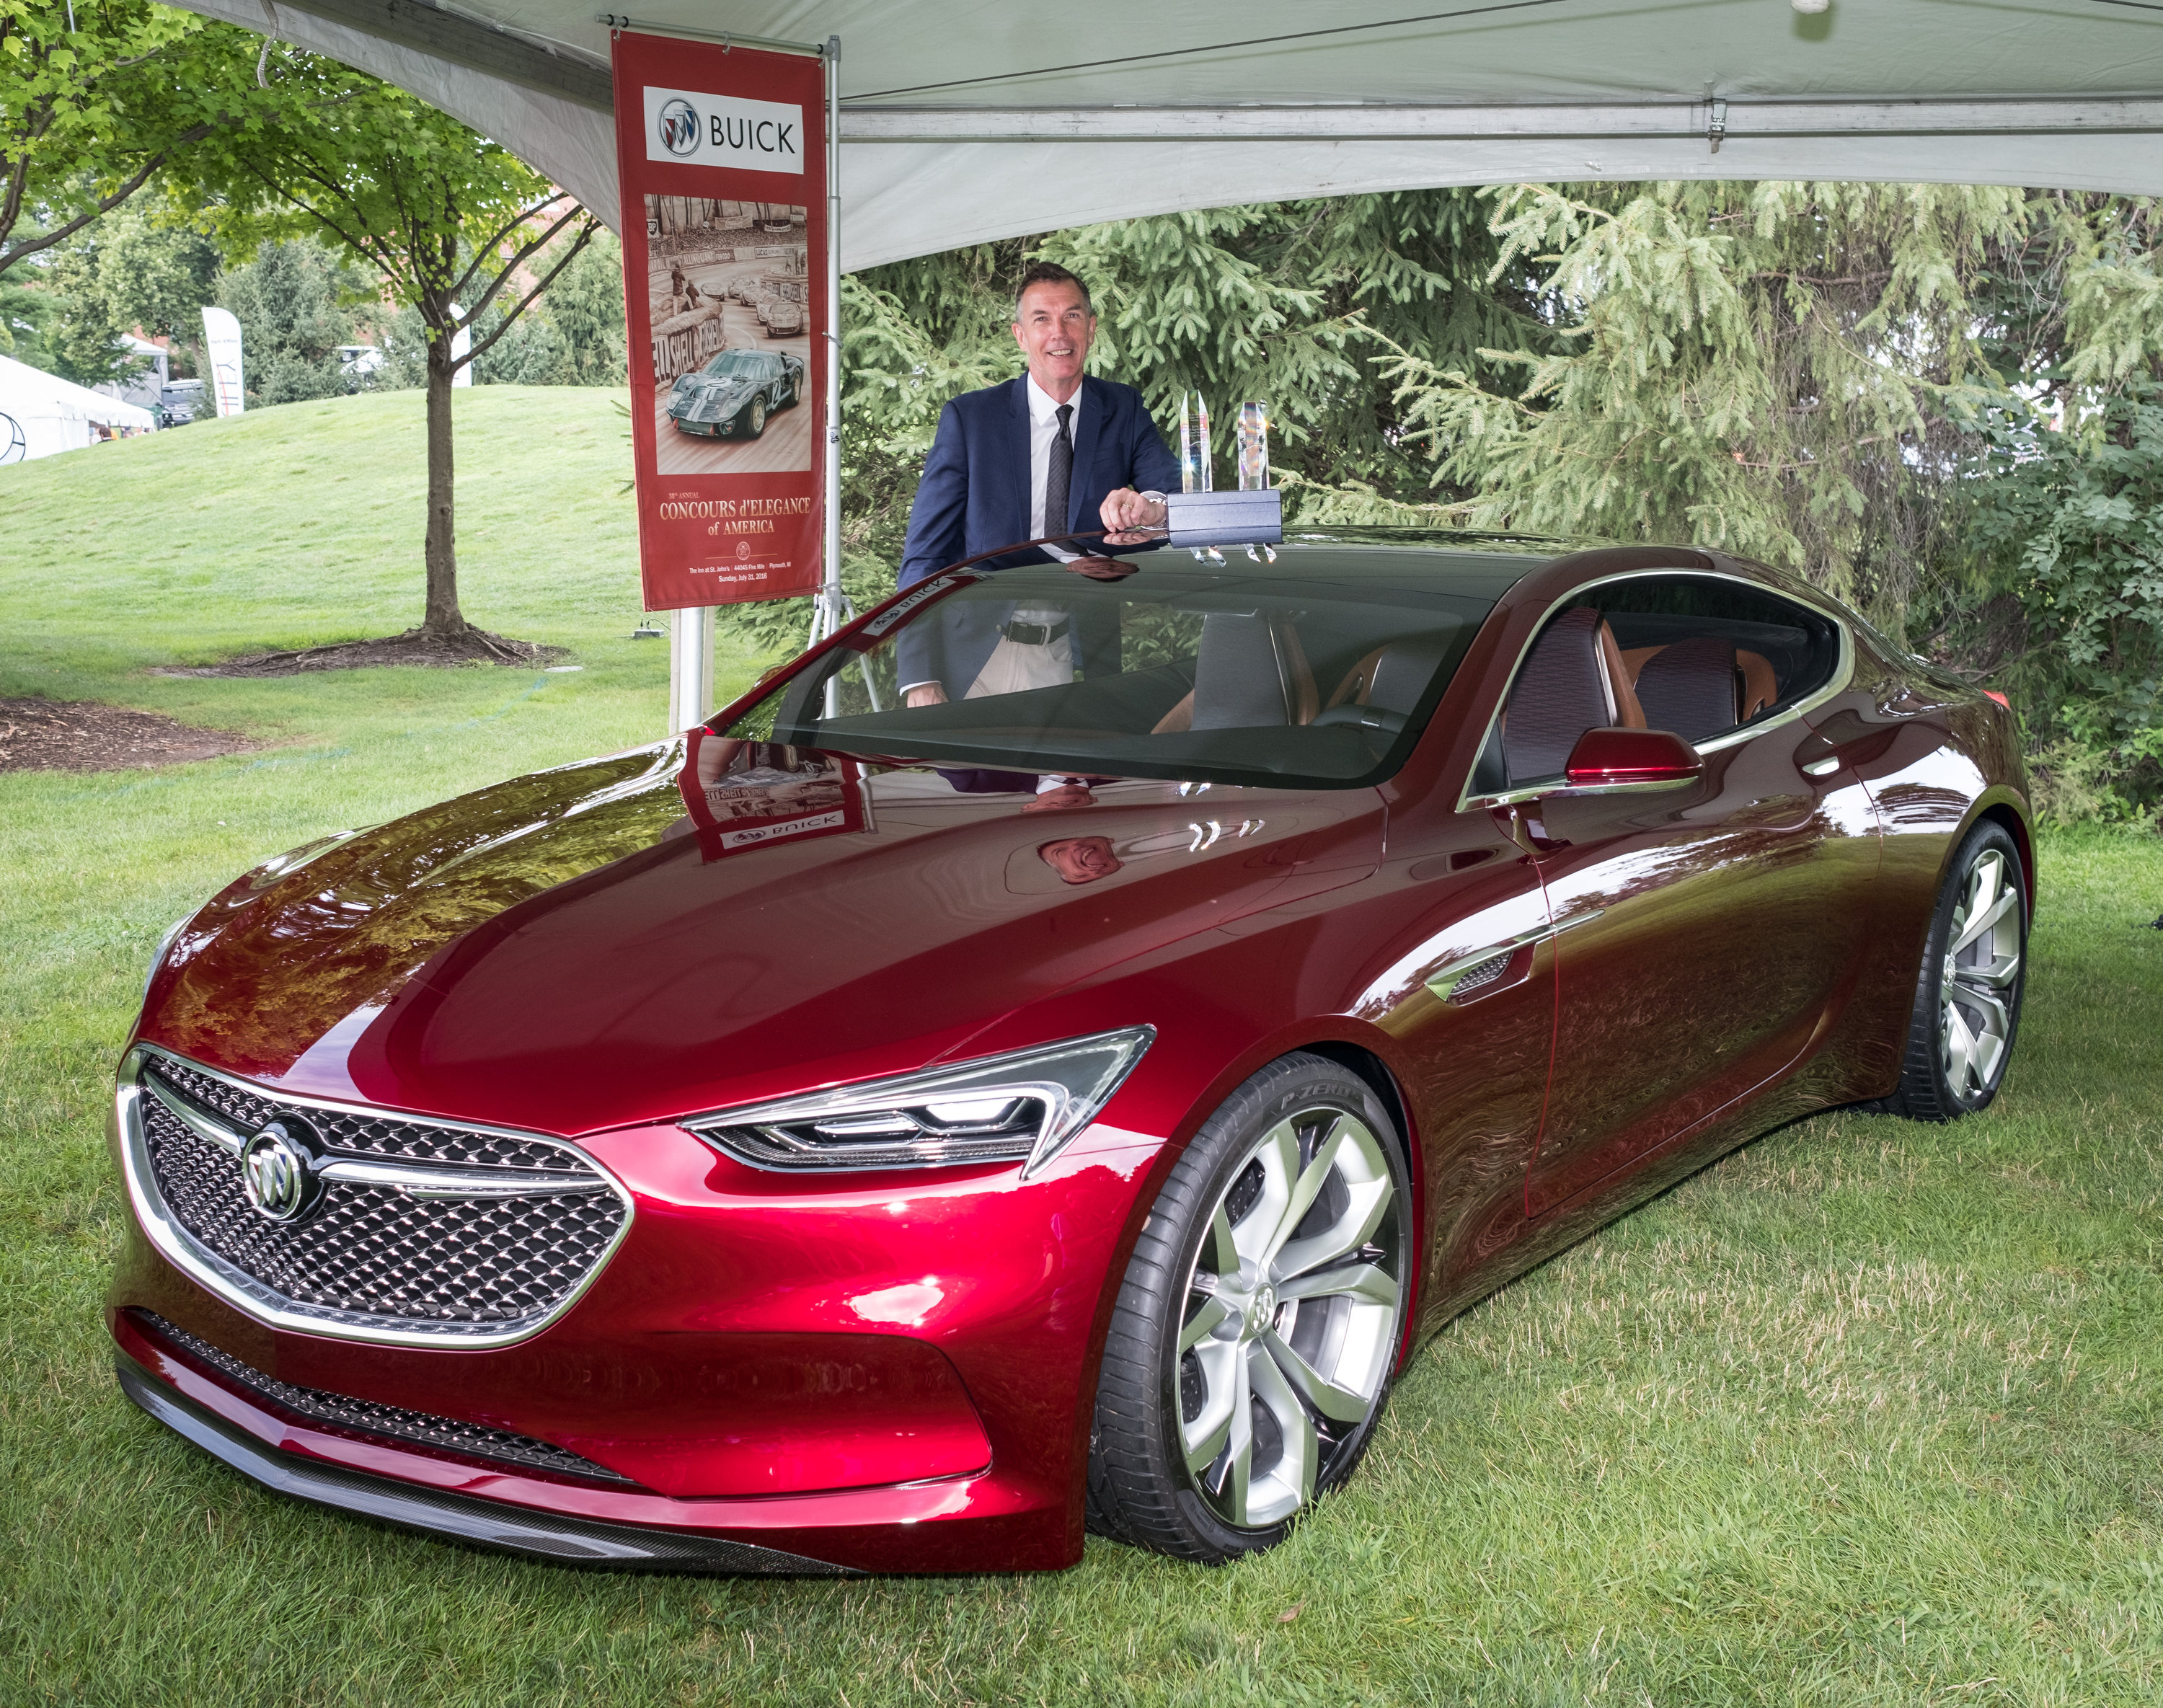 Buick Avista Named Concept Car Of The Year And Most Significant